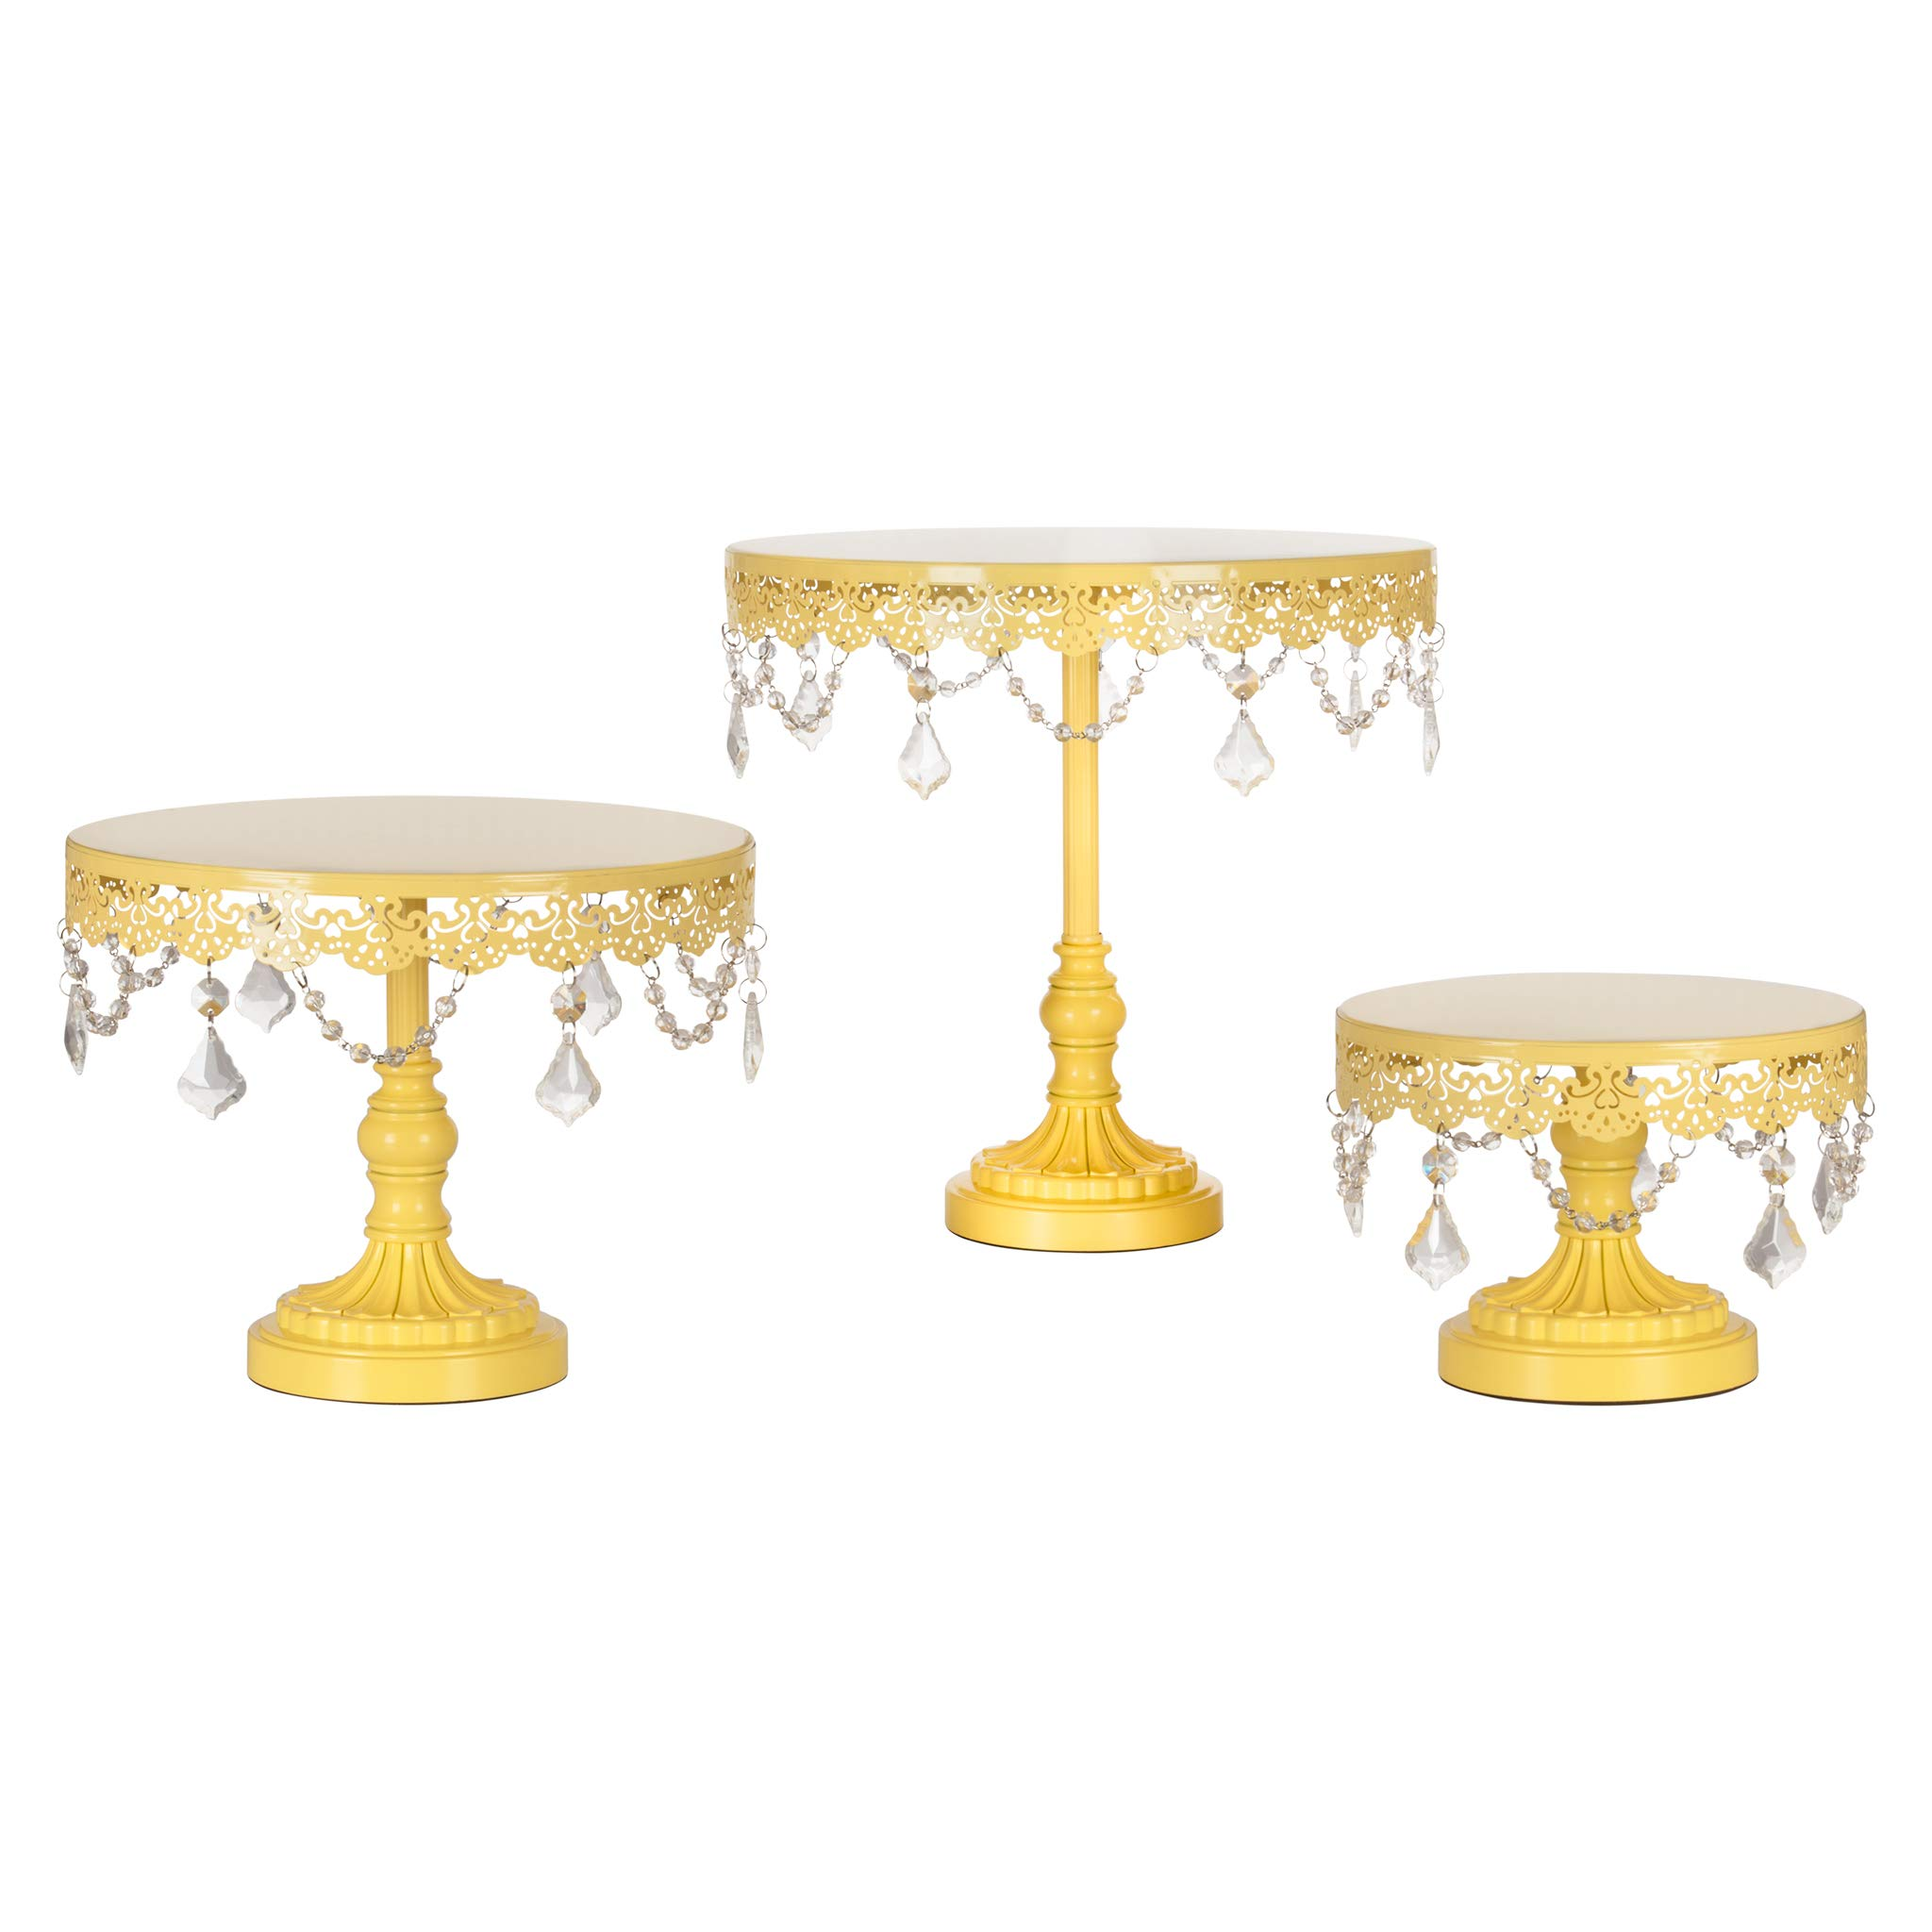 Amalfi Decor Cake Stand Set of 3 Pack, Dessert Cupcake Pastry Candy Display Plate for Wedding Event Birthday Party, Round Metal Pedestal Holder with Crystals, Yellow by Amalfi Décor